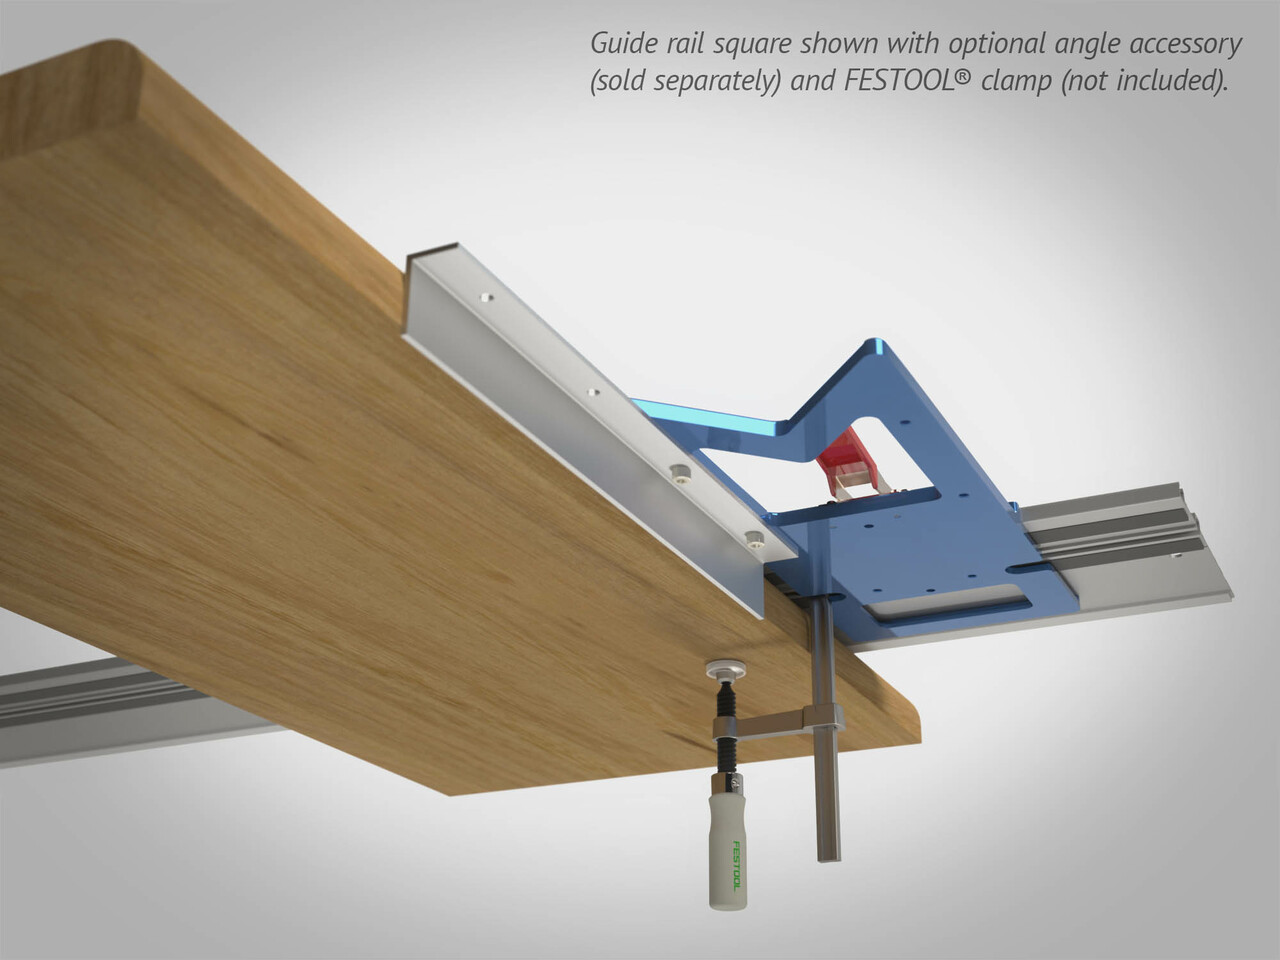 Extend your guide rail square's effective reference edge thickness and length with our optional Angle Accessory.